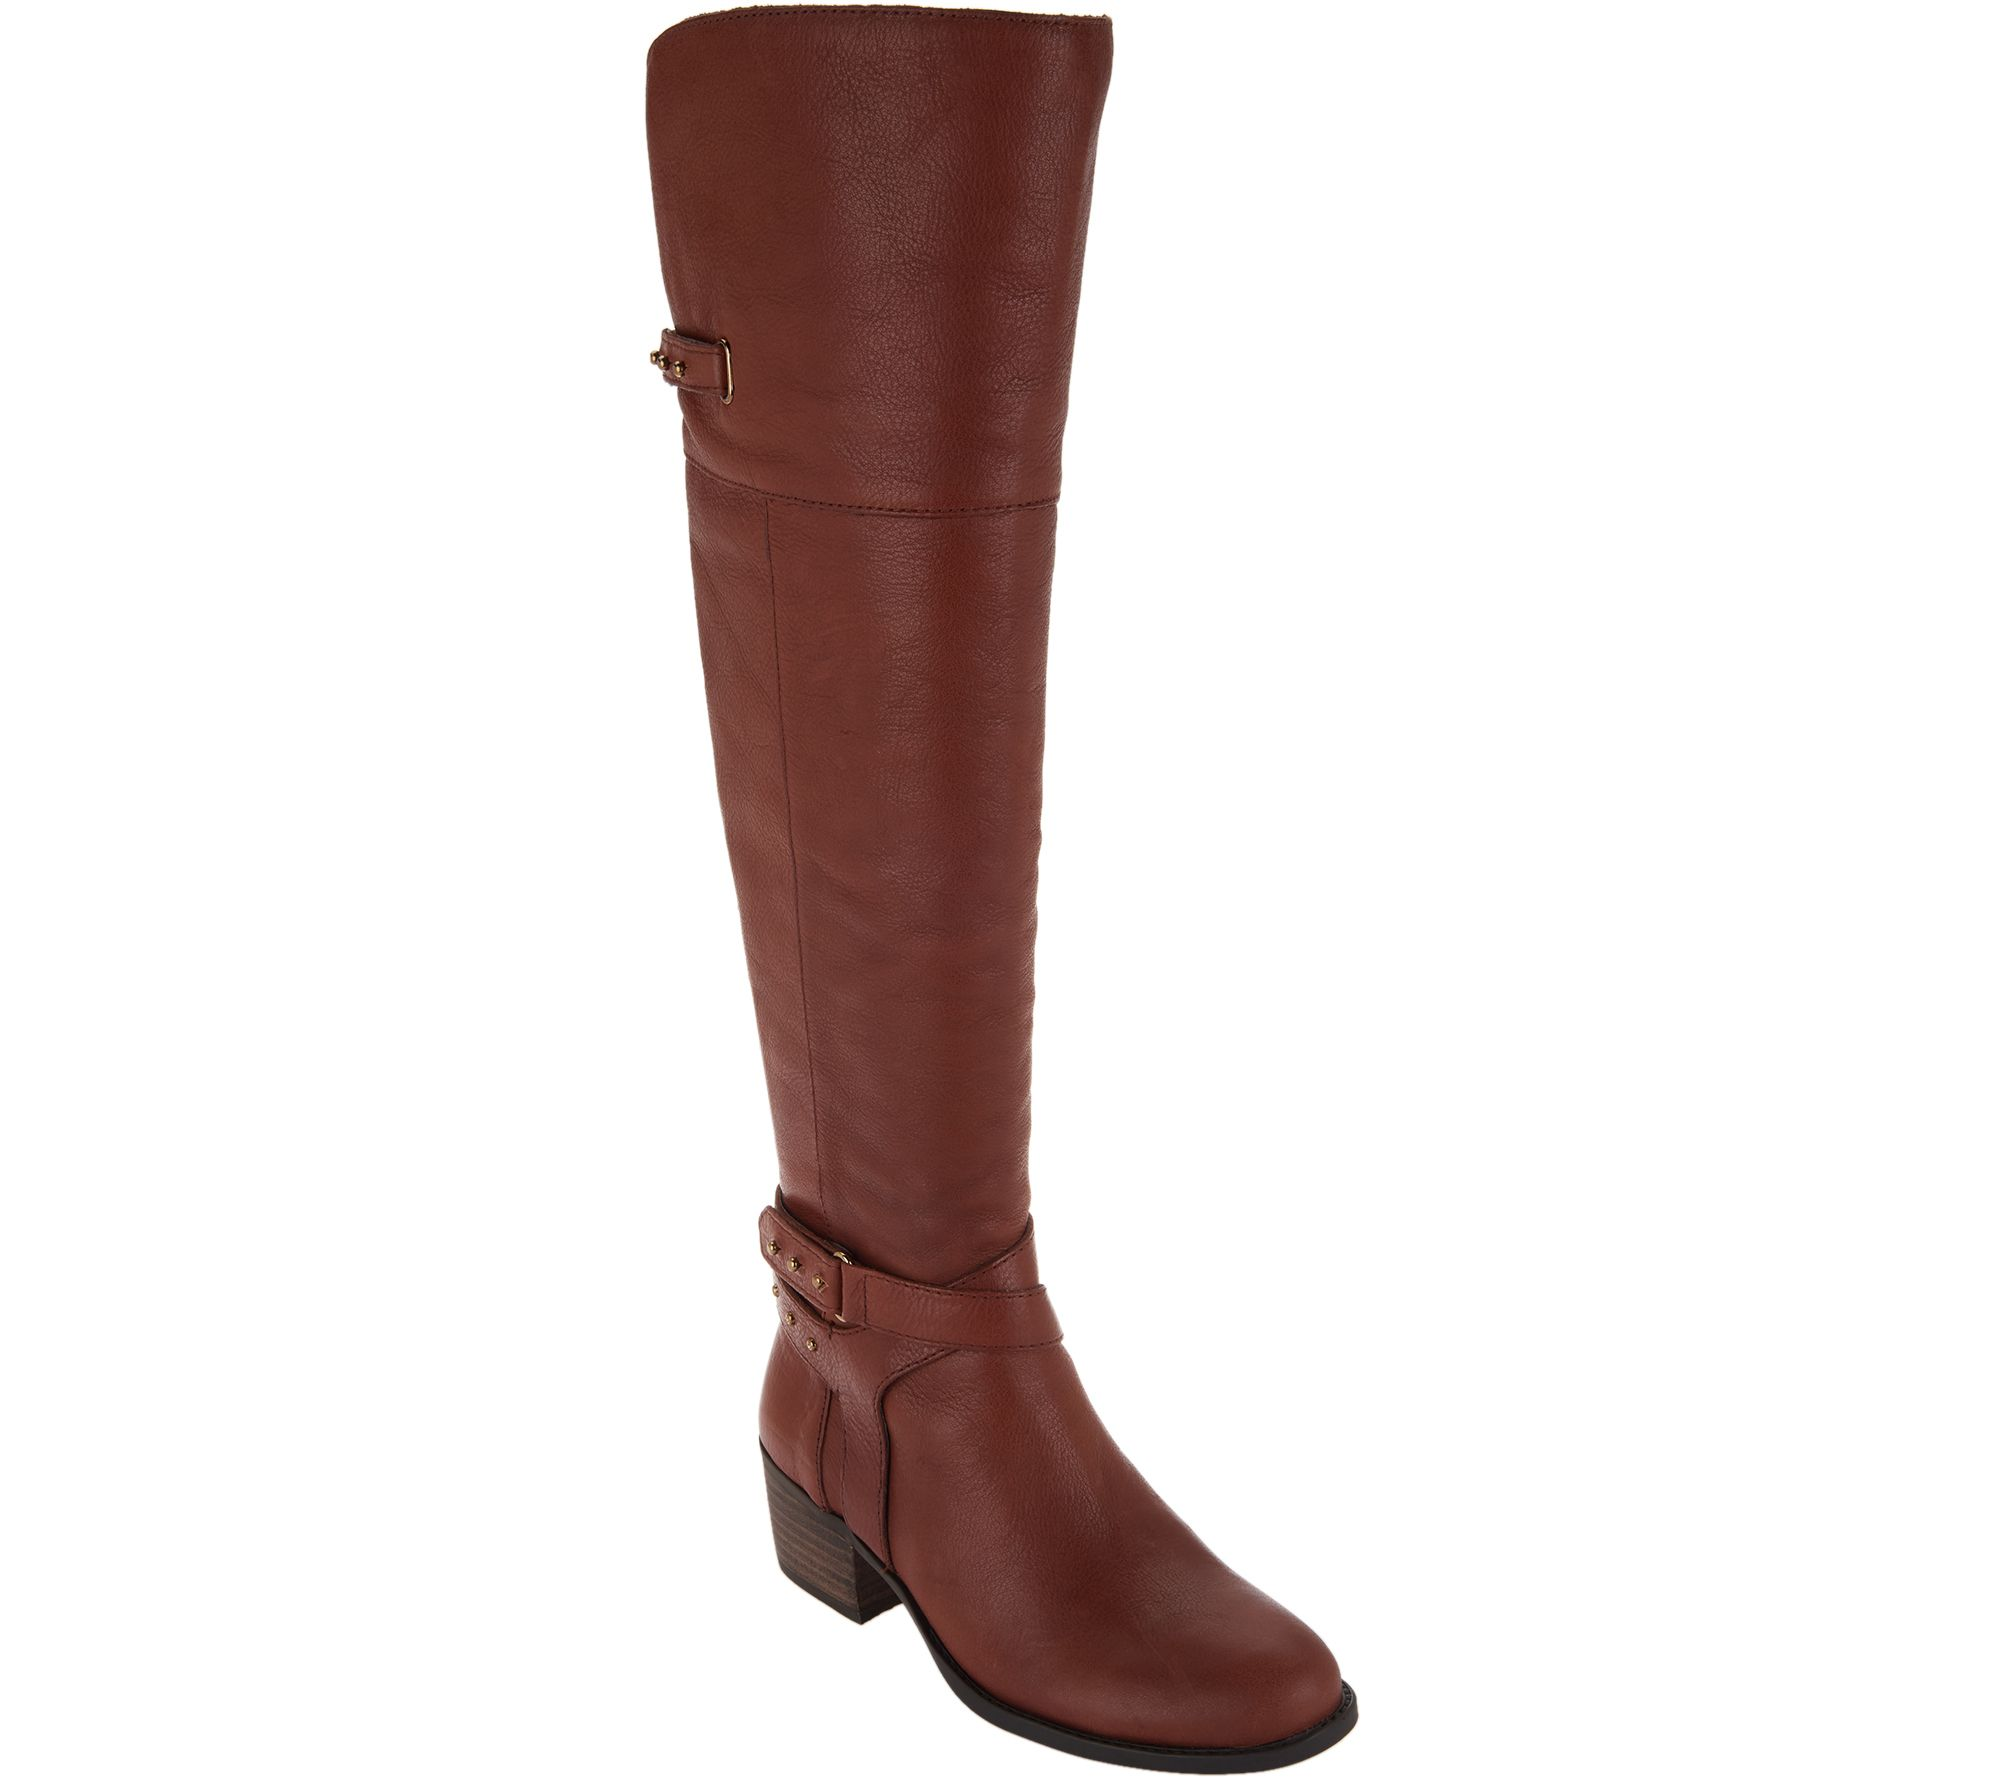 f6e6b3d886 Vince Camuto Leather Wide Calf Tall ShaftBoots - Bestant - Page 1 — QVC.com